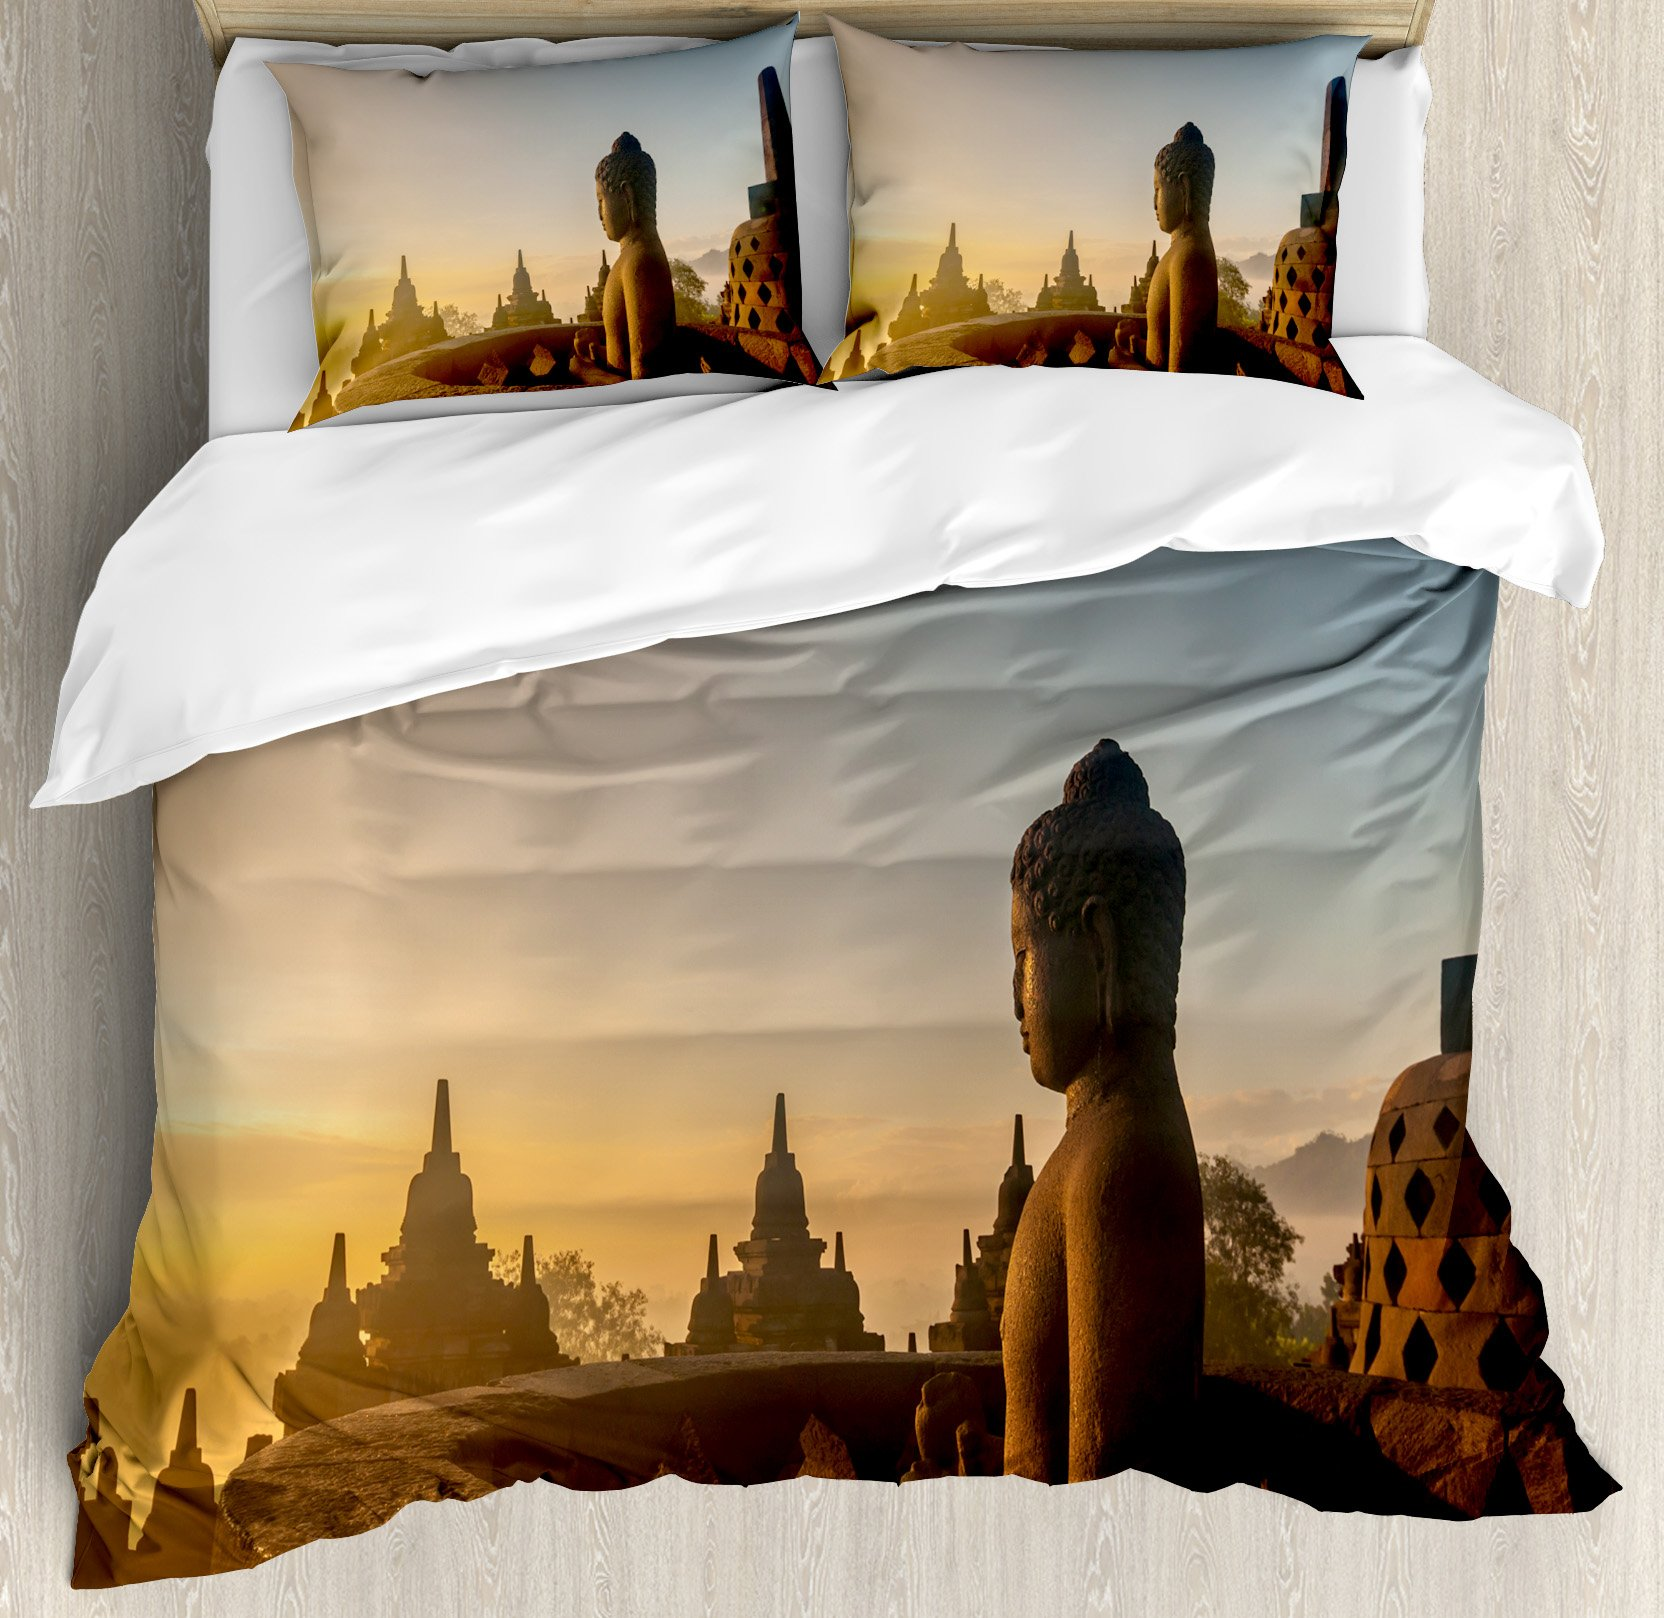 Asian Decor Duvet Cover Set by Ambesonne, Religious Temple in Indian Sunrise Ancient Architecture Mystic Style Ceremony Picture Wall Art, 3 Piece Bedding Set with Pillow Shams, Queen / Full, Multi by Ambesonne